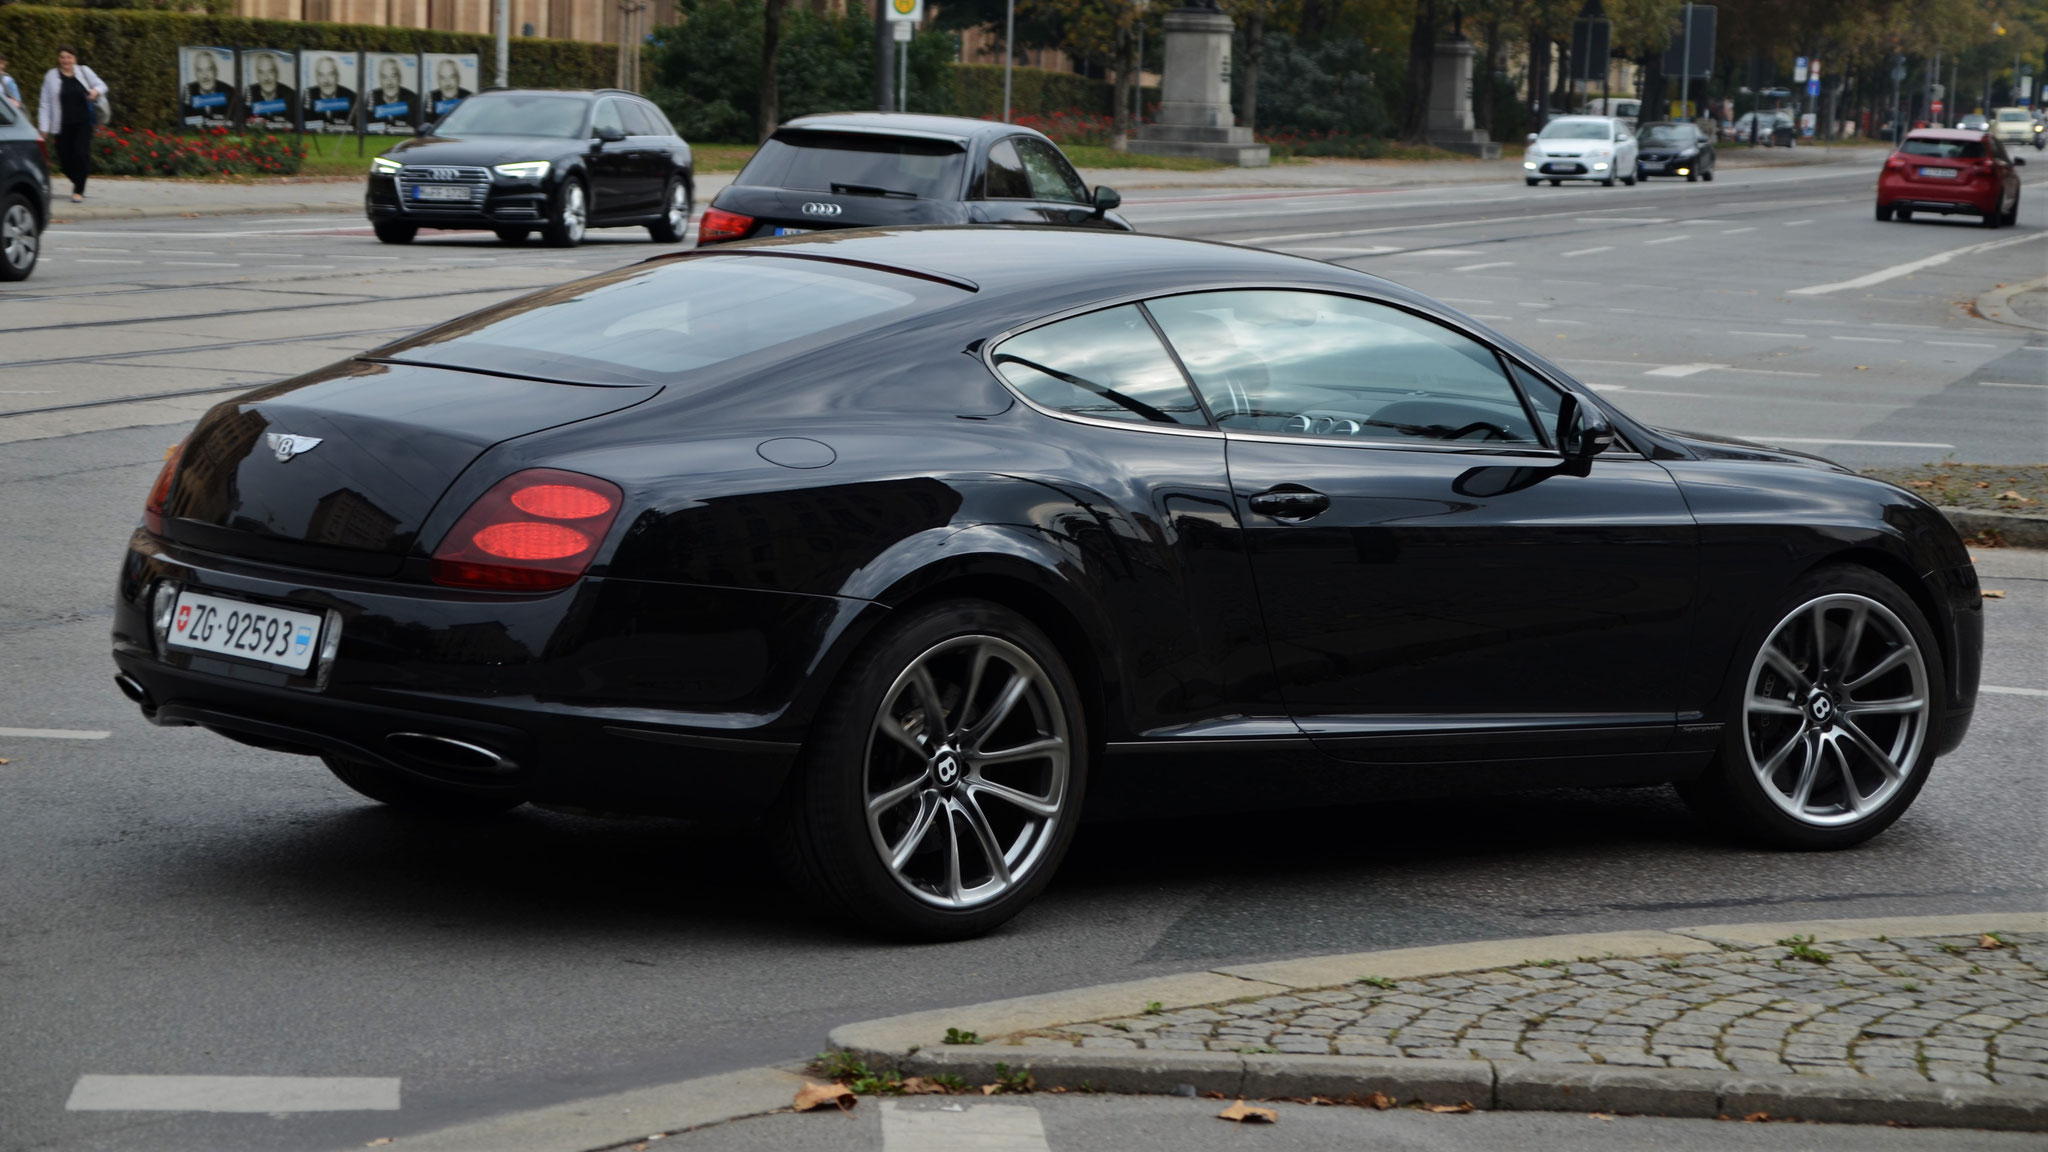 Bentley Continental GT Supersports - ZG-92593 (CH)